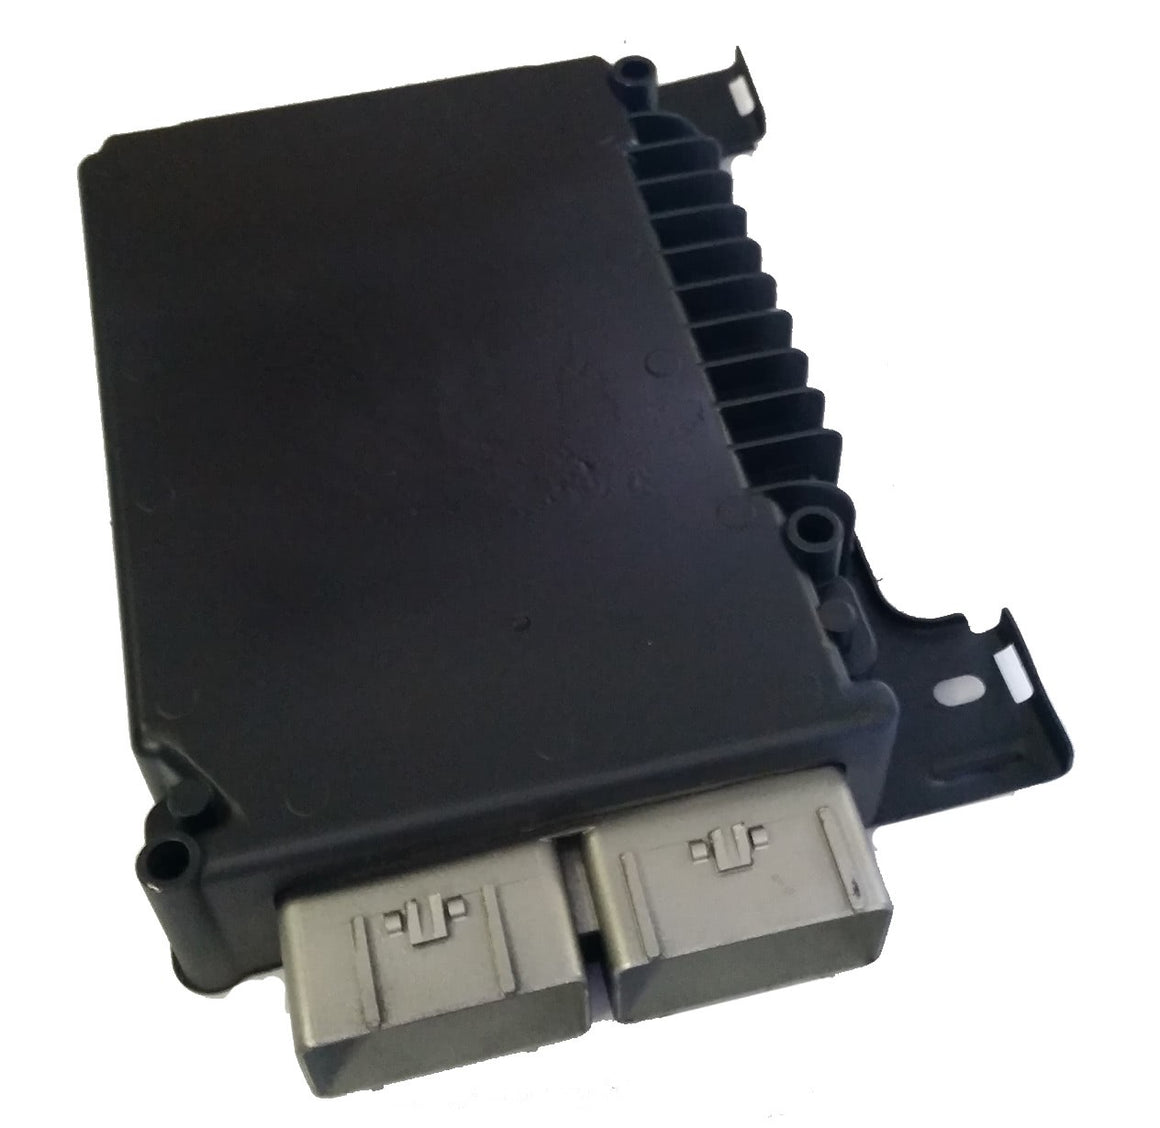 Dodge Challenger Power-train Control Module (PCM / ECM / ECU)